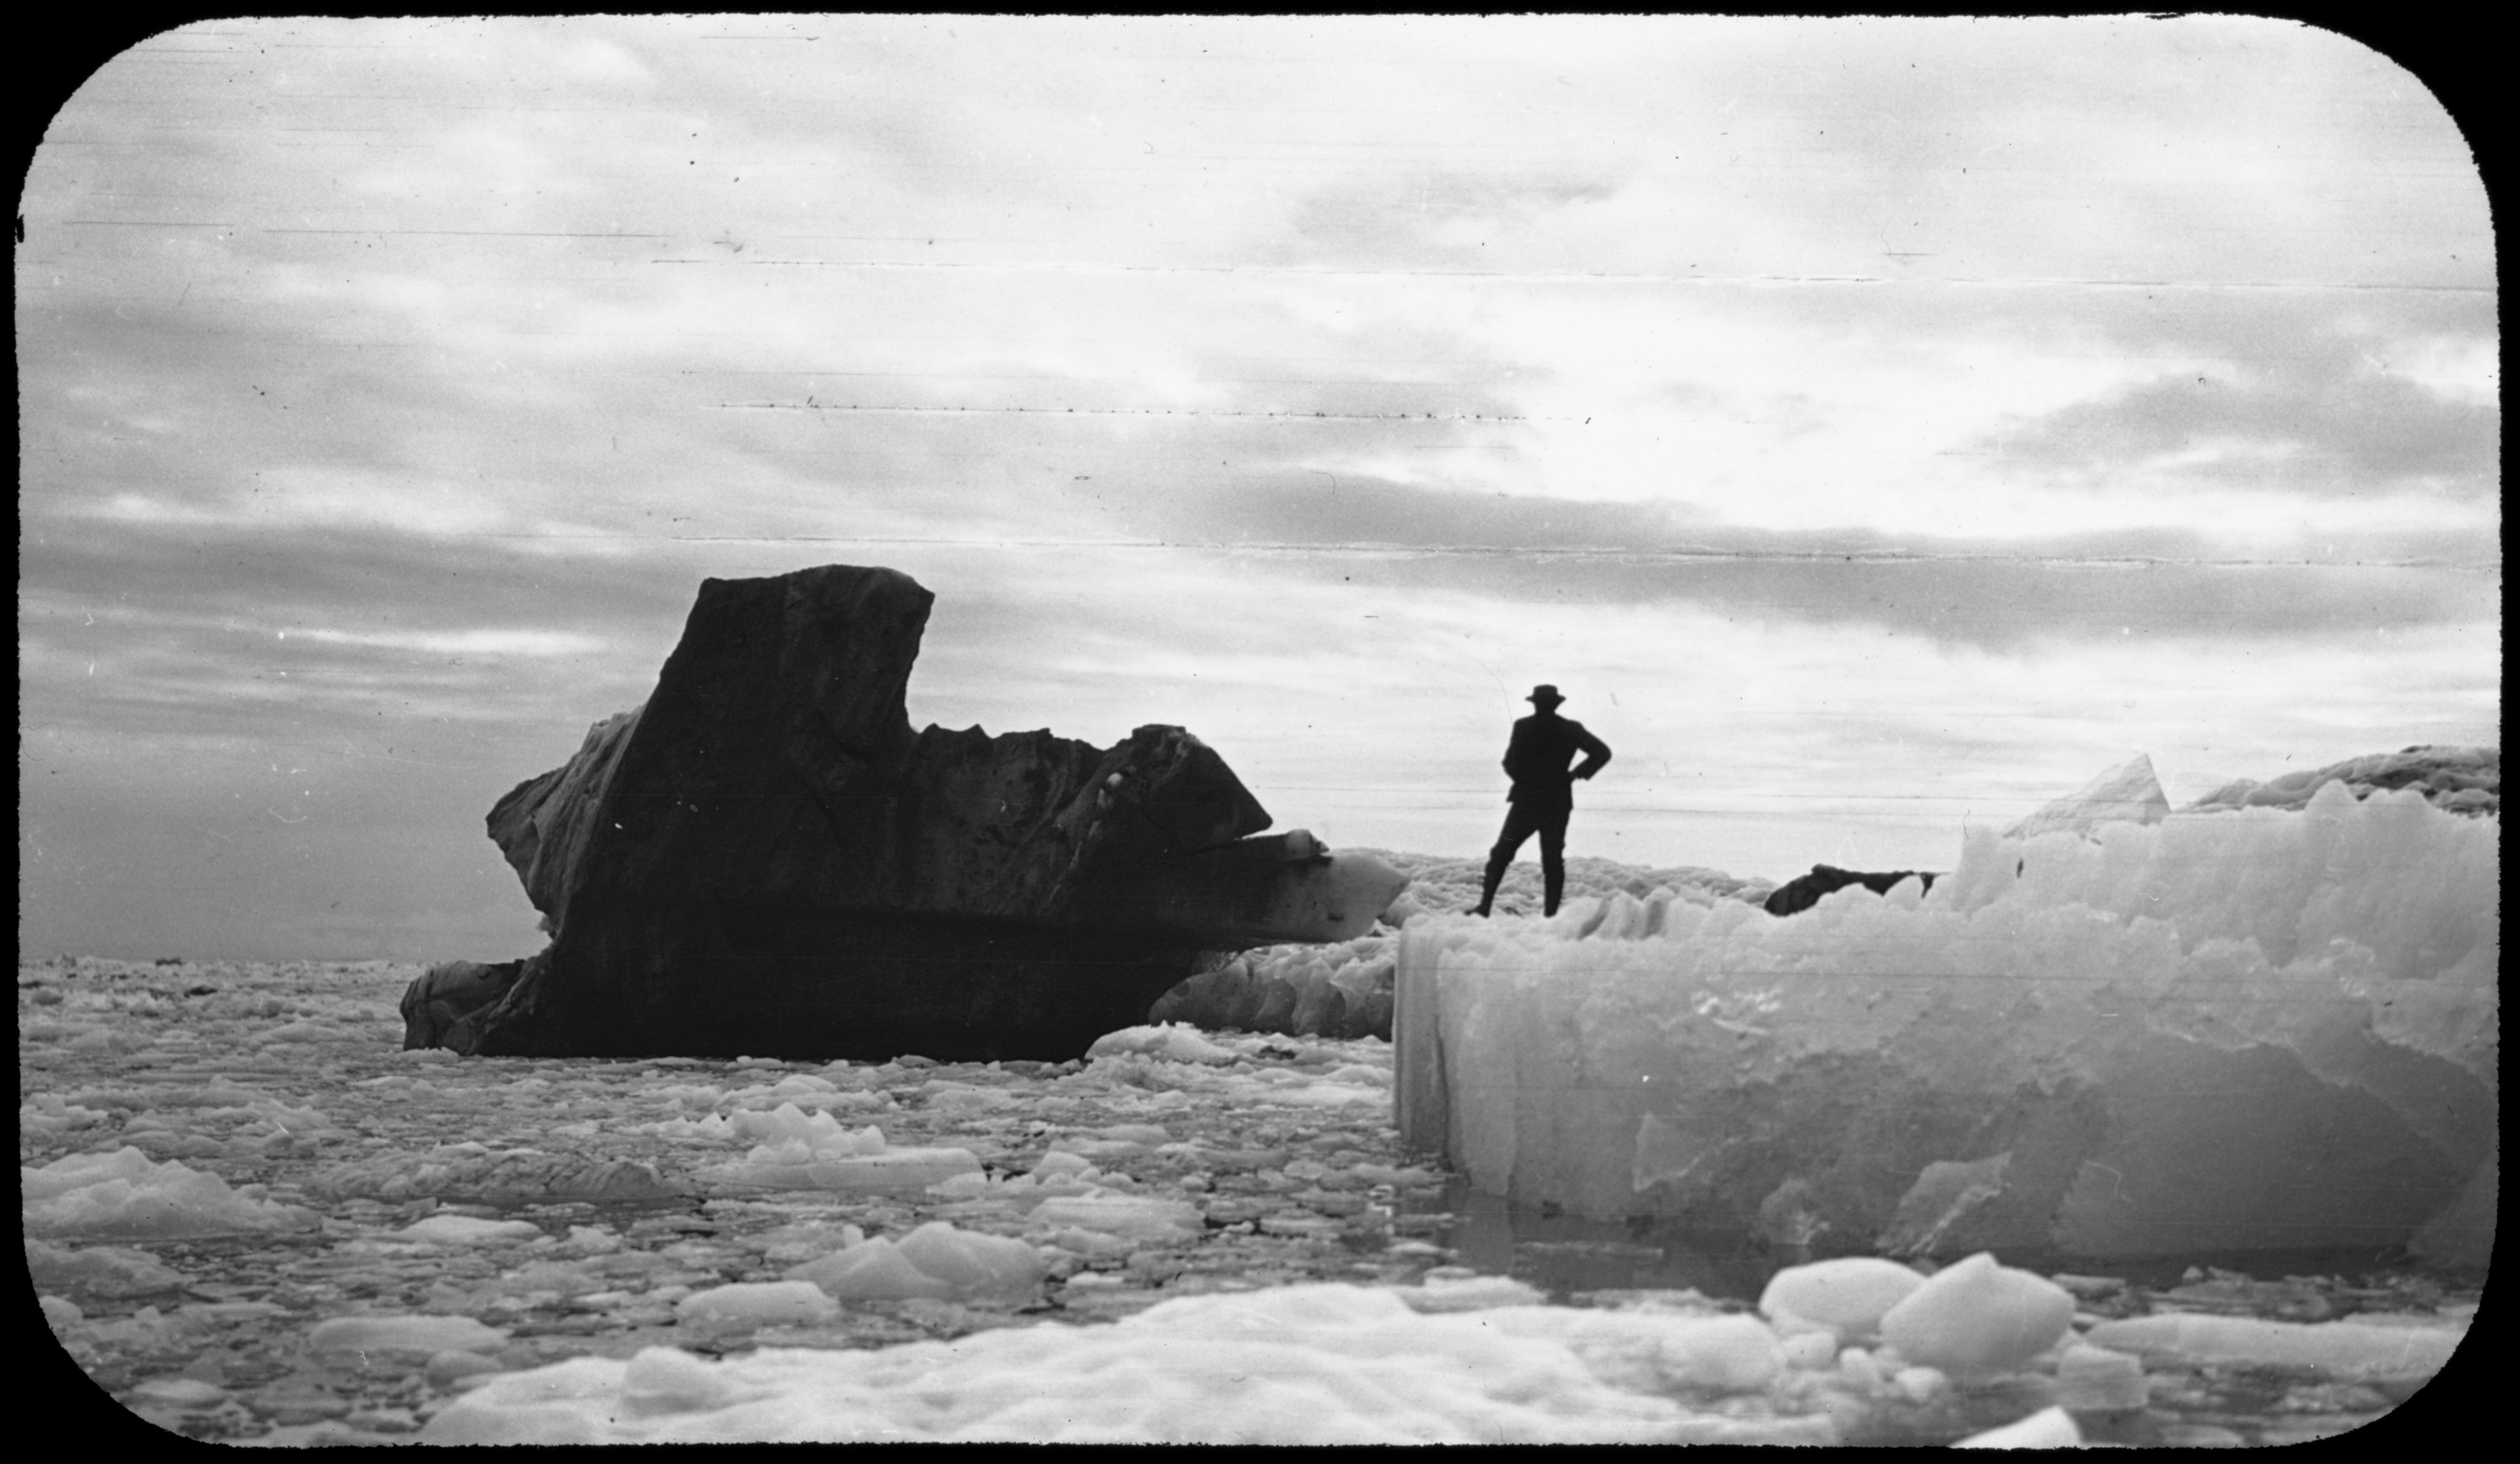 Black iceberg. 1909. Image provided by Cornell University.